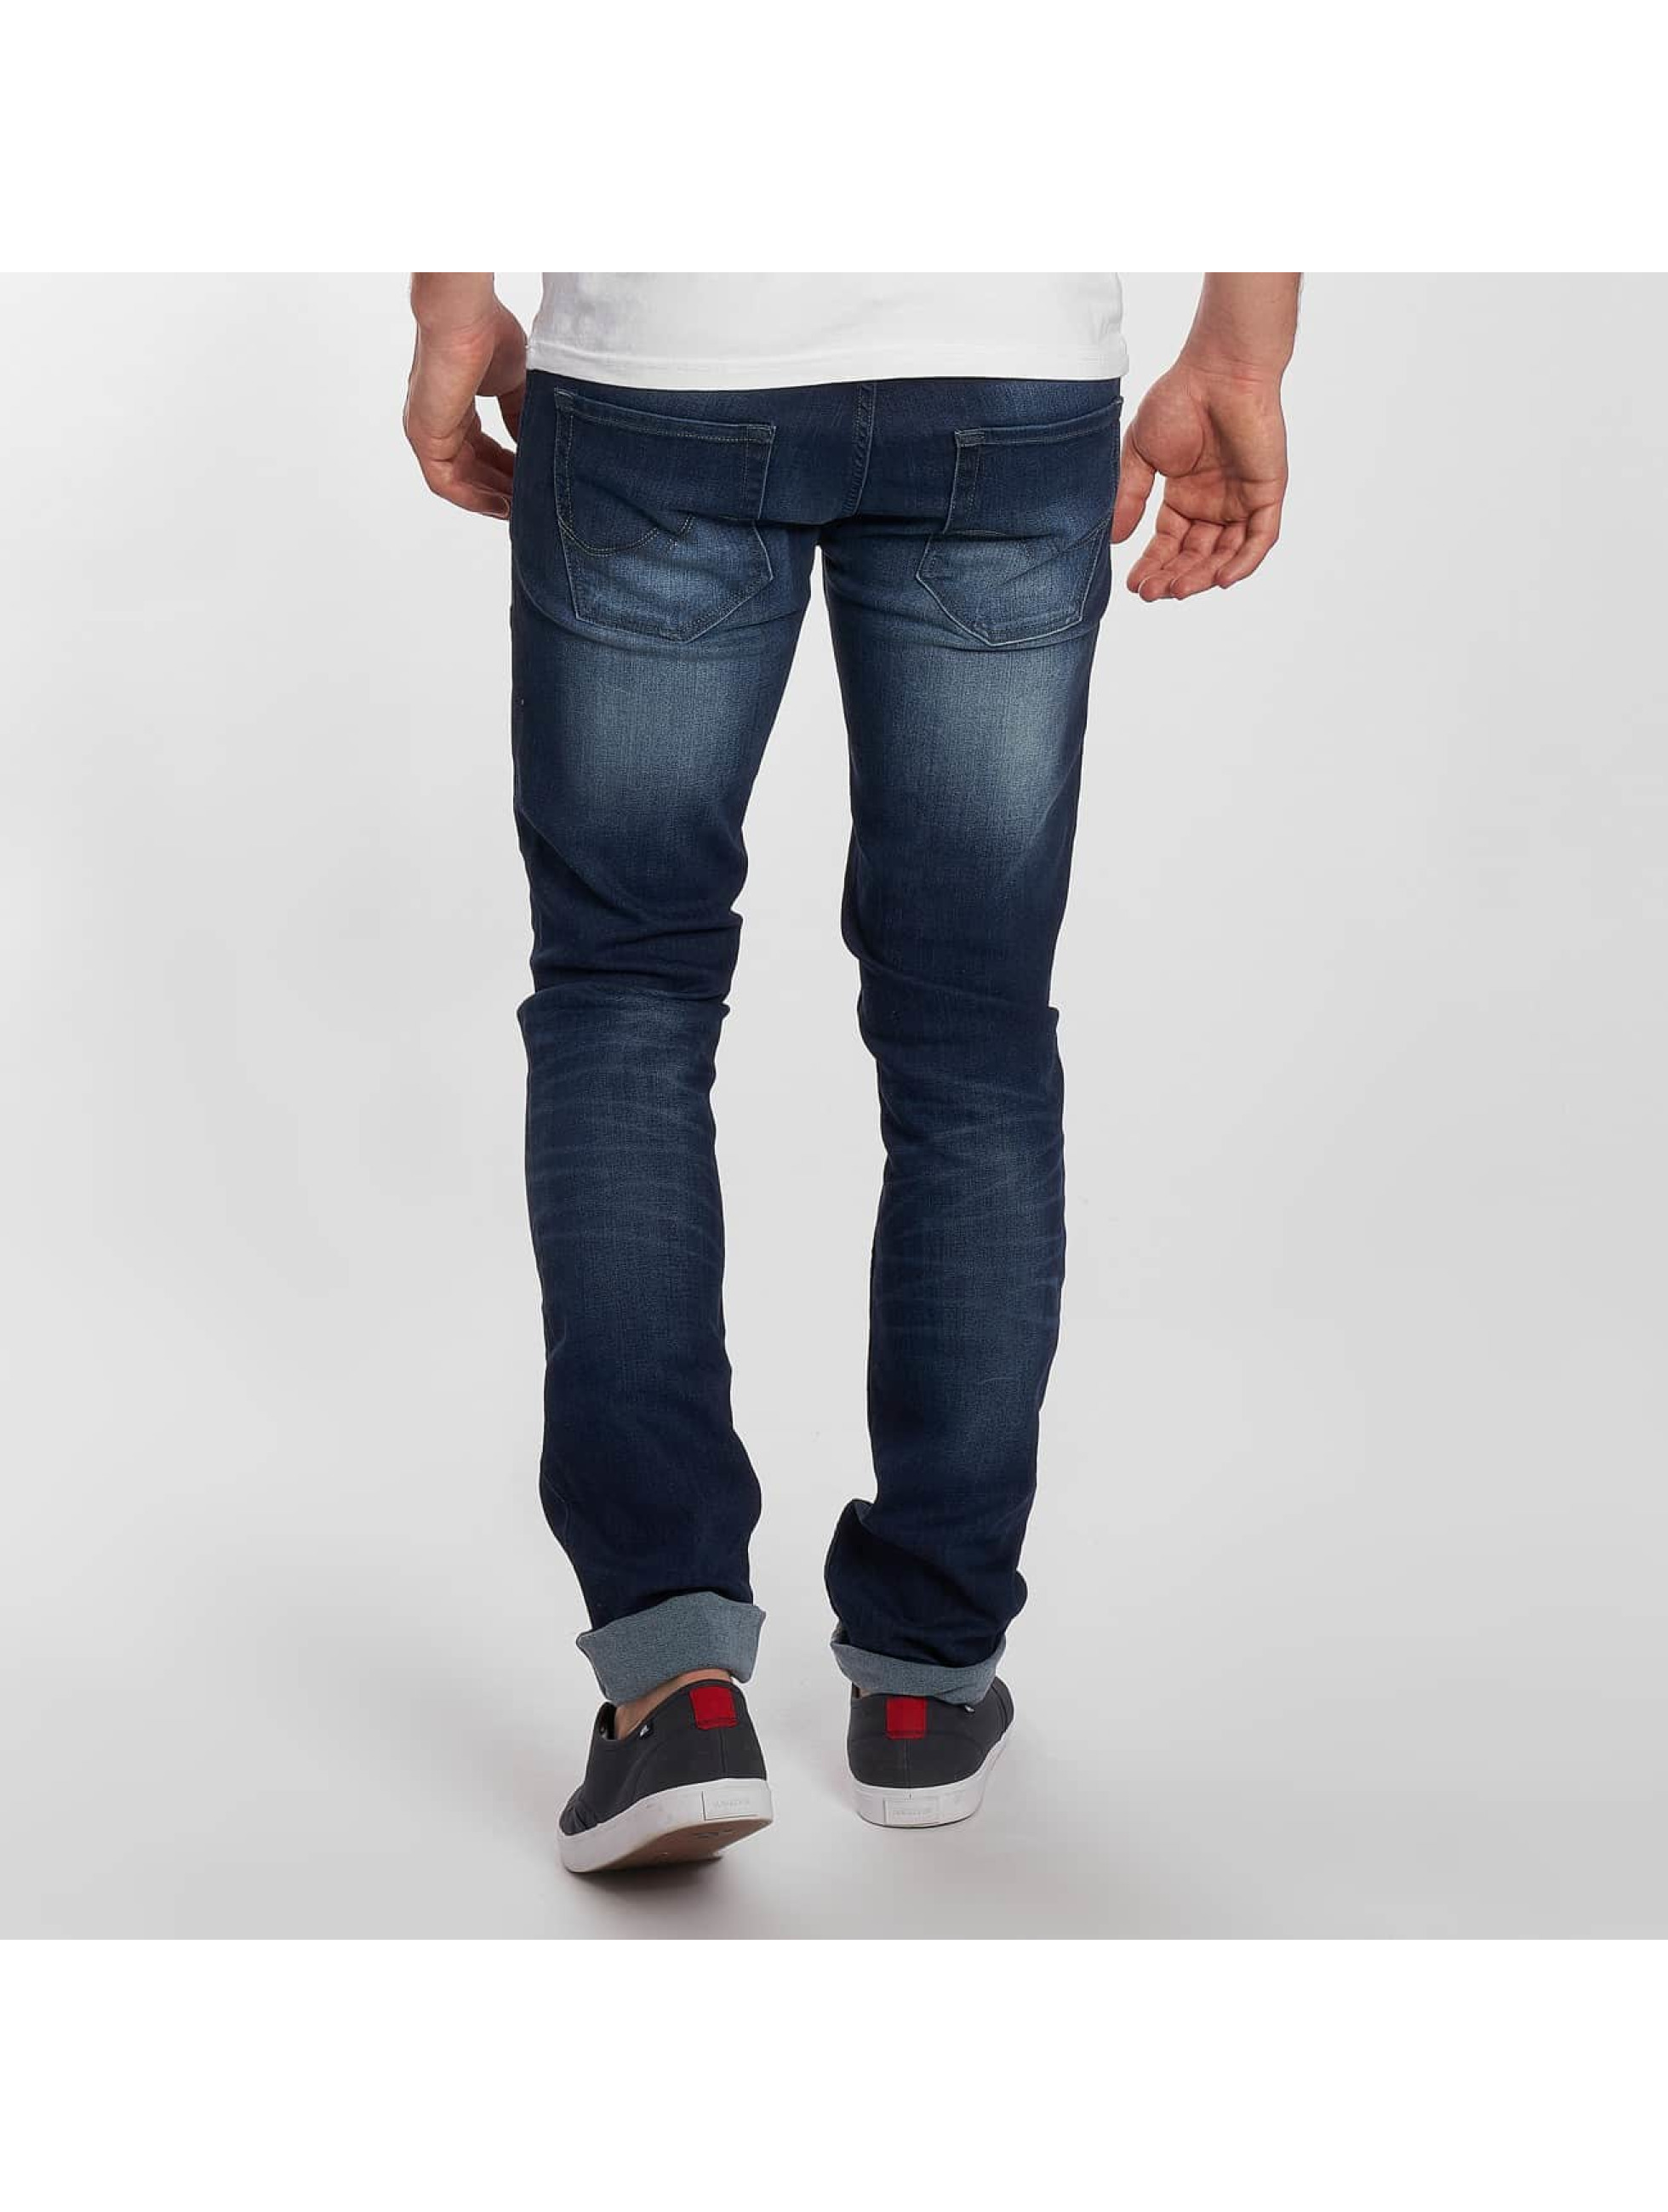 Jack & Jones Slim Fit Jeans jjiTim jjOriginal blauw